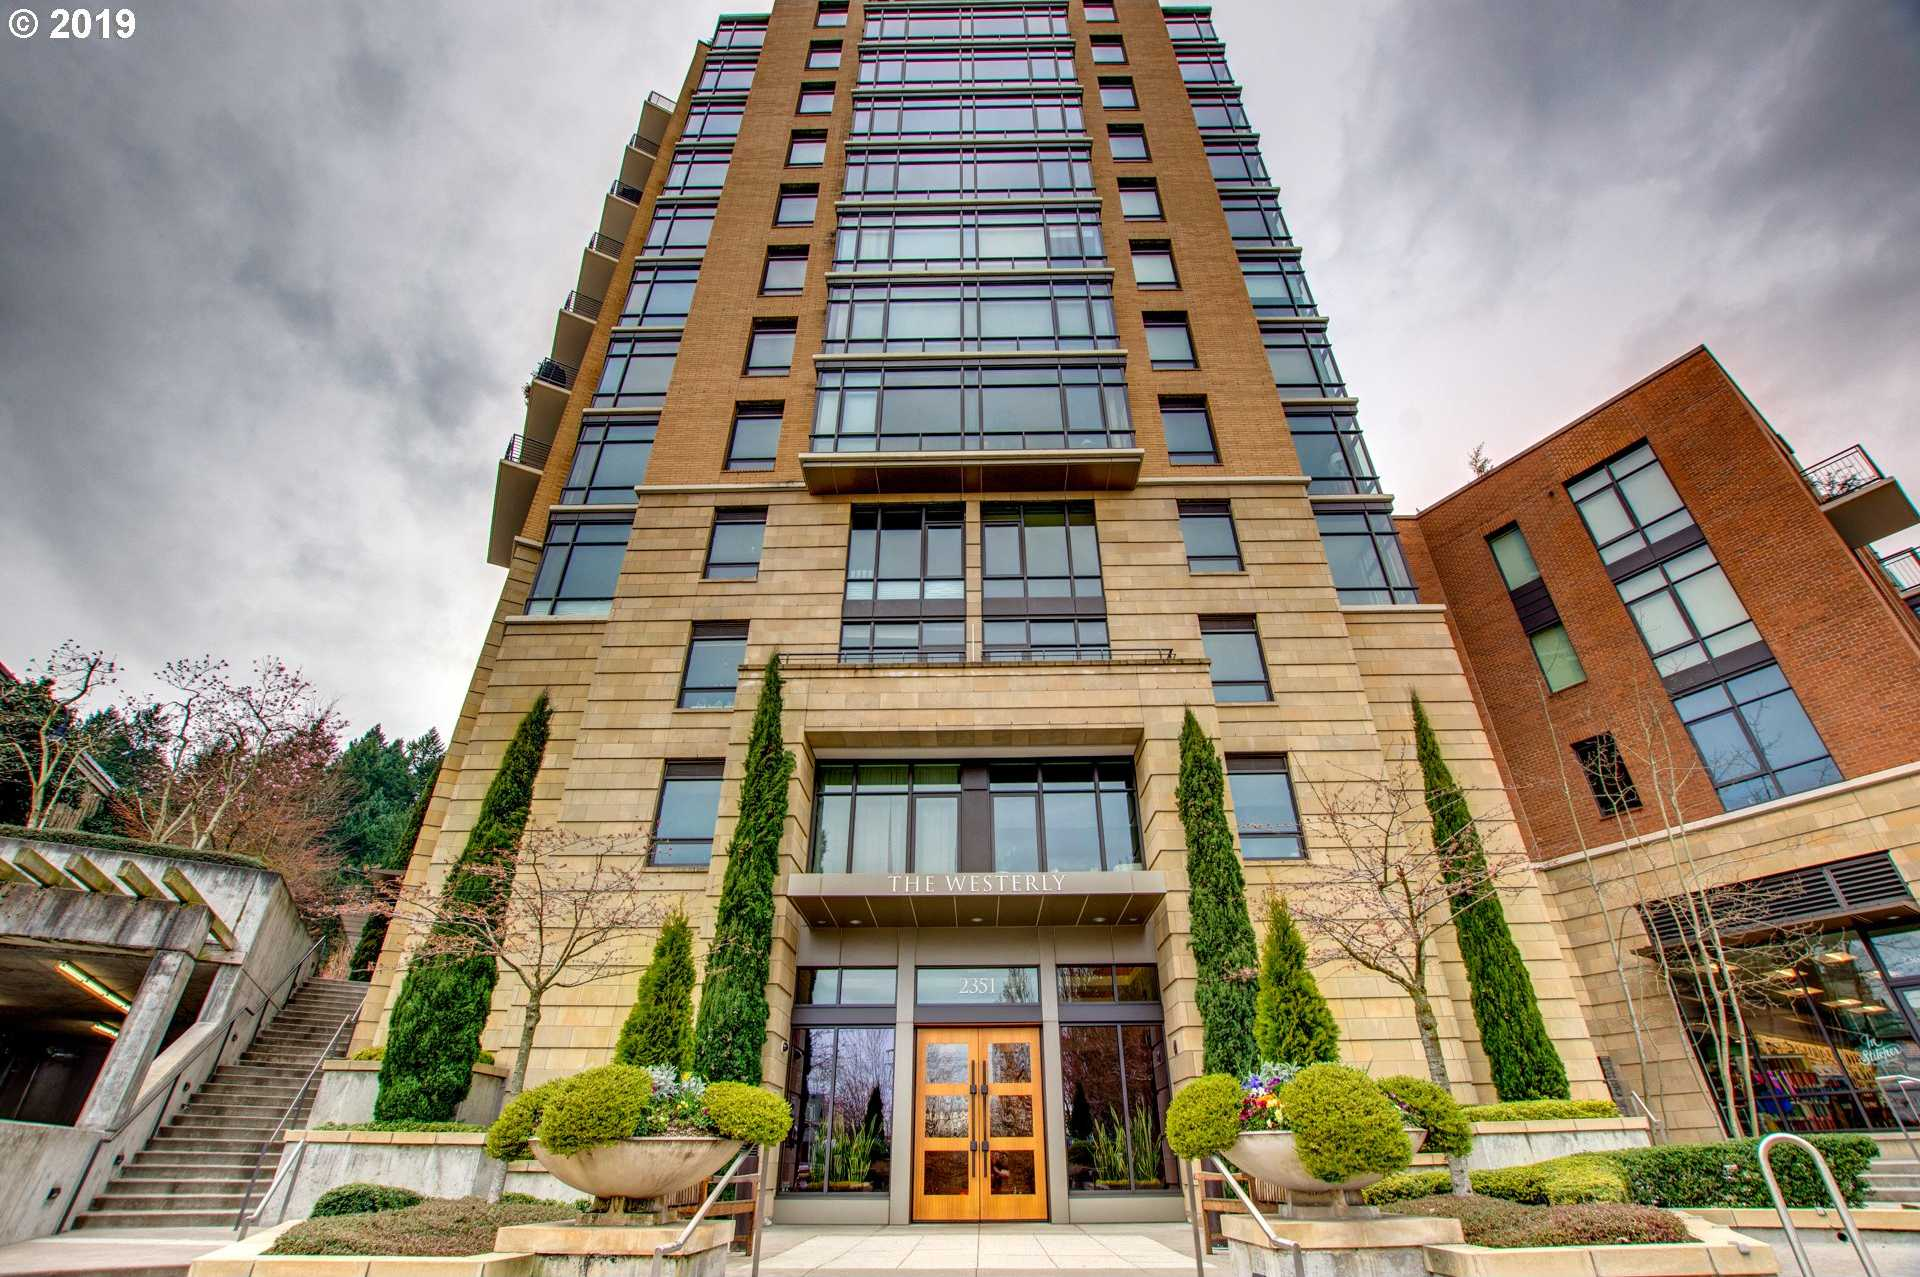 $499,000 - 1Br/1Ba -  for Sale in Nw 23rd/alphabet District, Portland